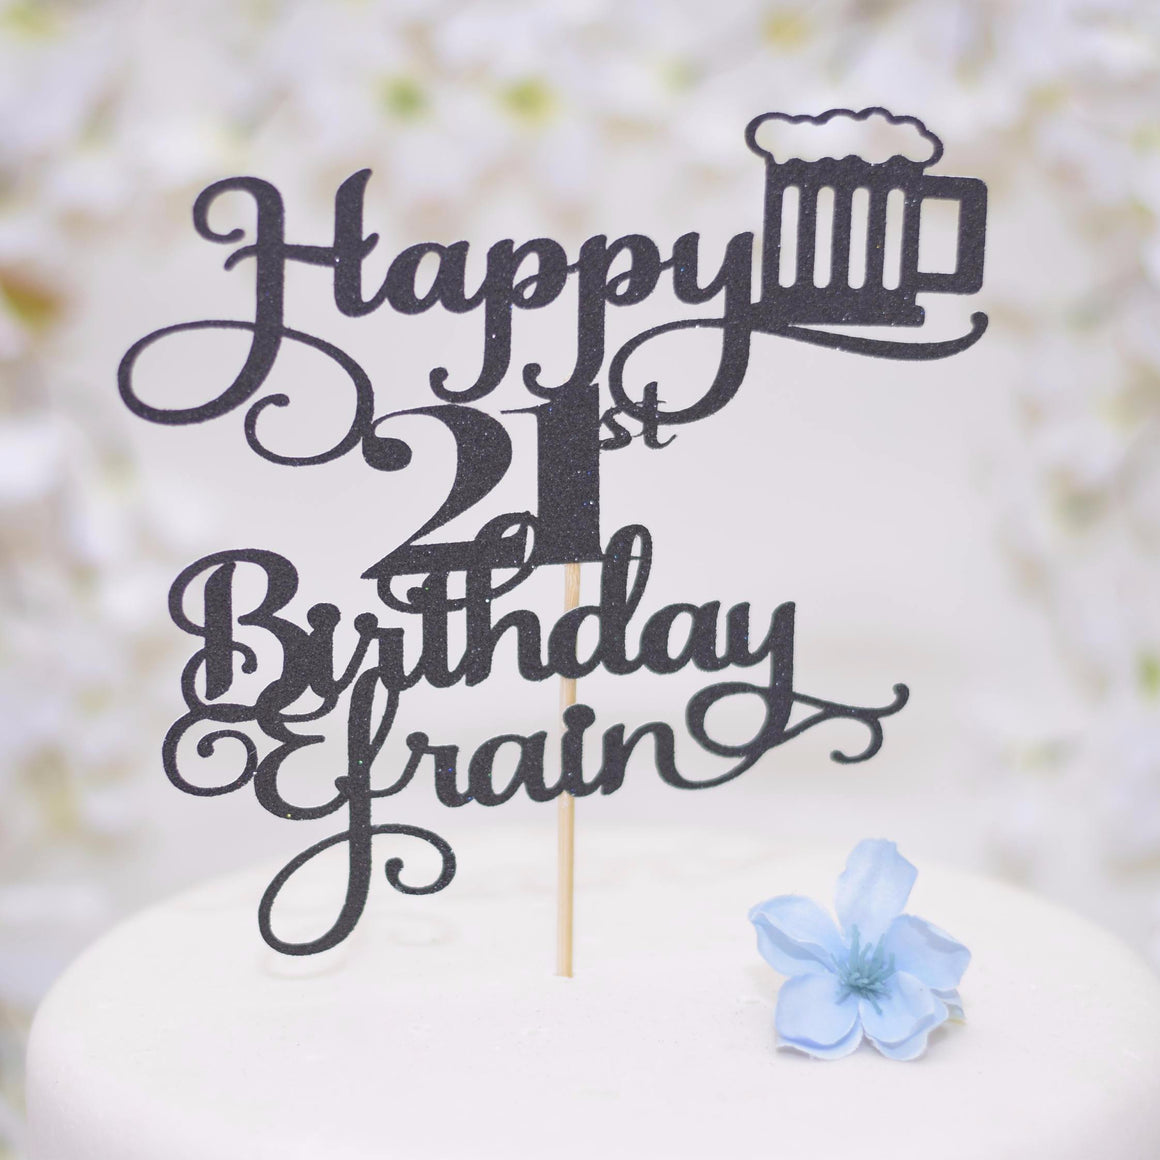 Happy 21st Birthday Efrain With Beer Details Black Glitter Cake Topper